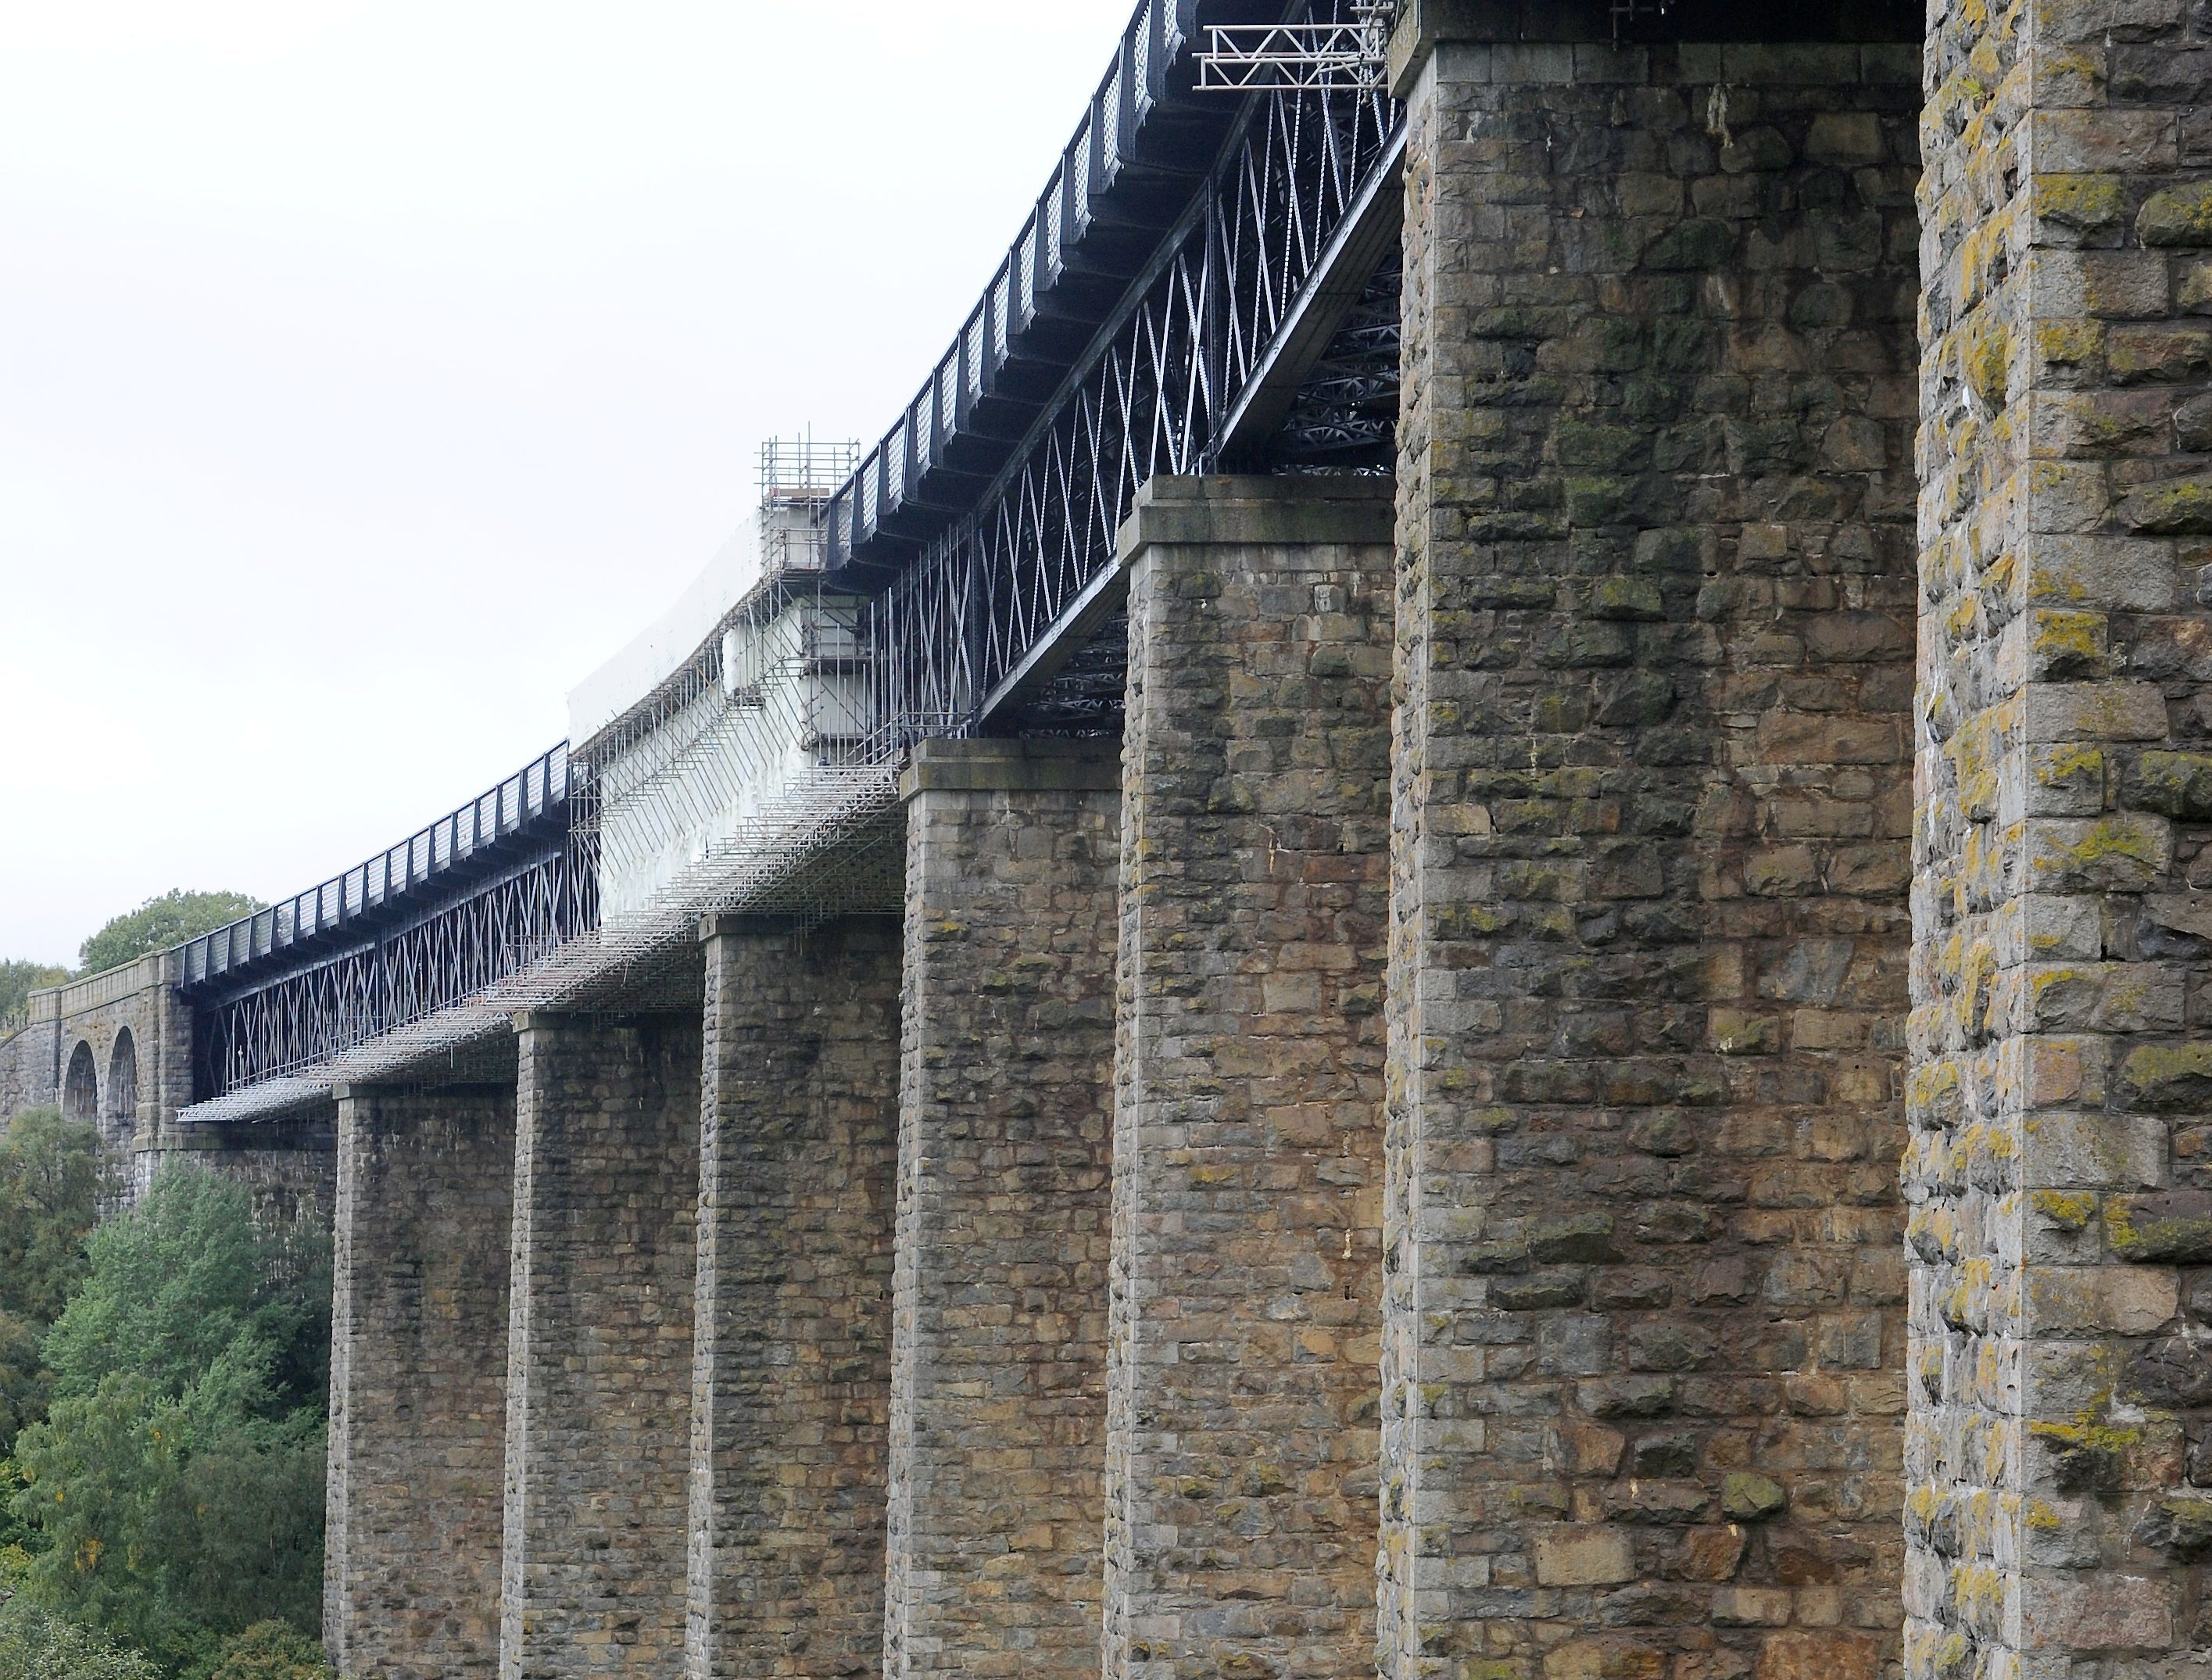 The Findhorn Viaduct. Pics and video by Sandy McCook